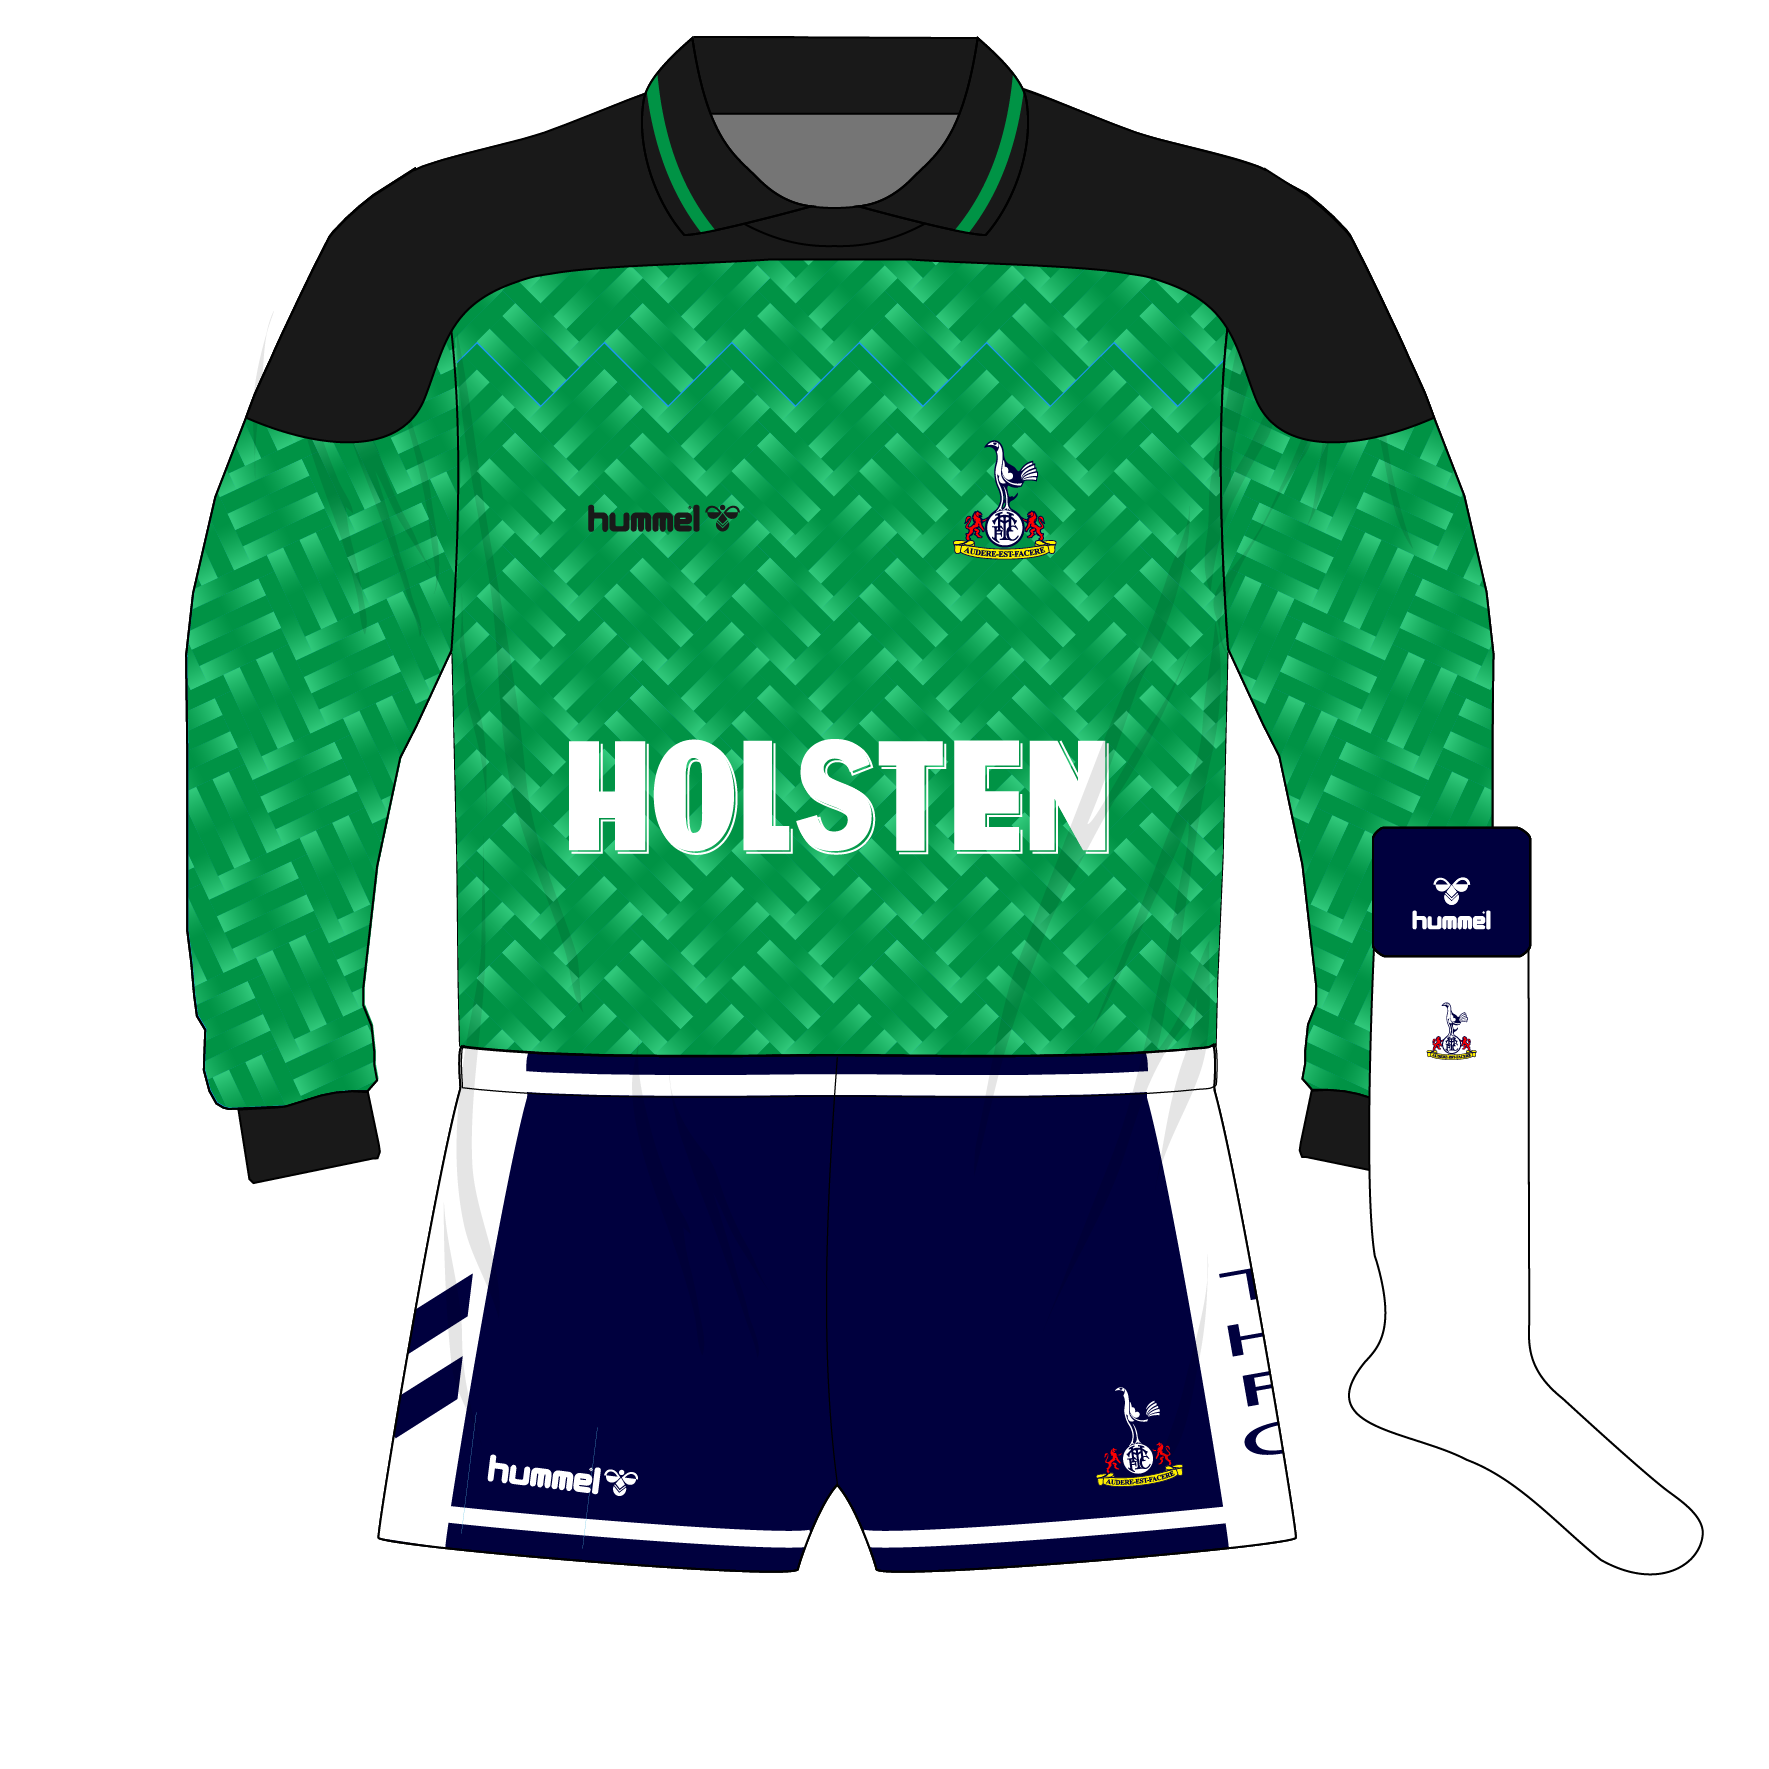 4190263e47c tottenham-hotspur-spurs-hummel-1989-1991-green-goalkeeper-shirt-thorstvedt-holsten  - Museum of Jerseys (1769x1769)